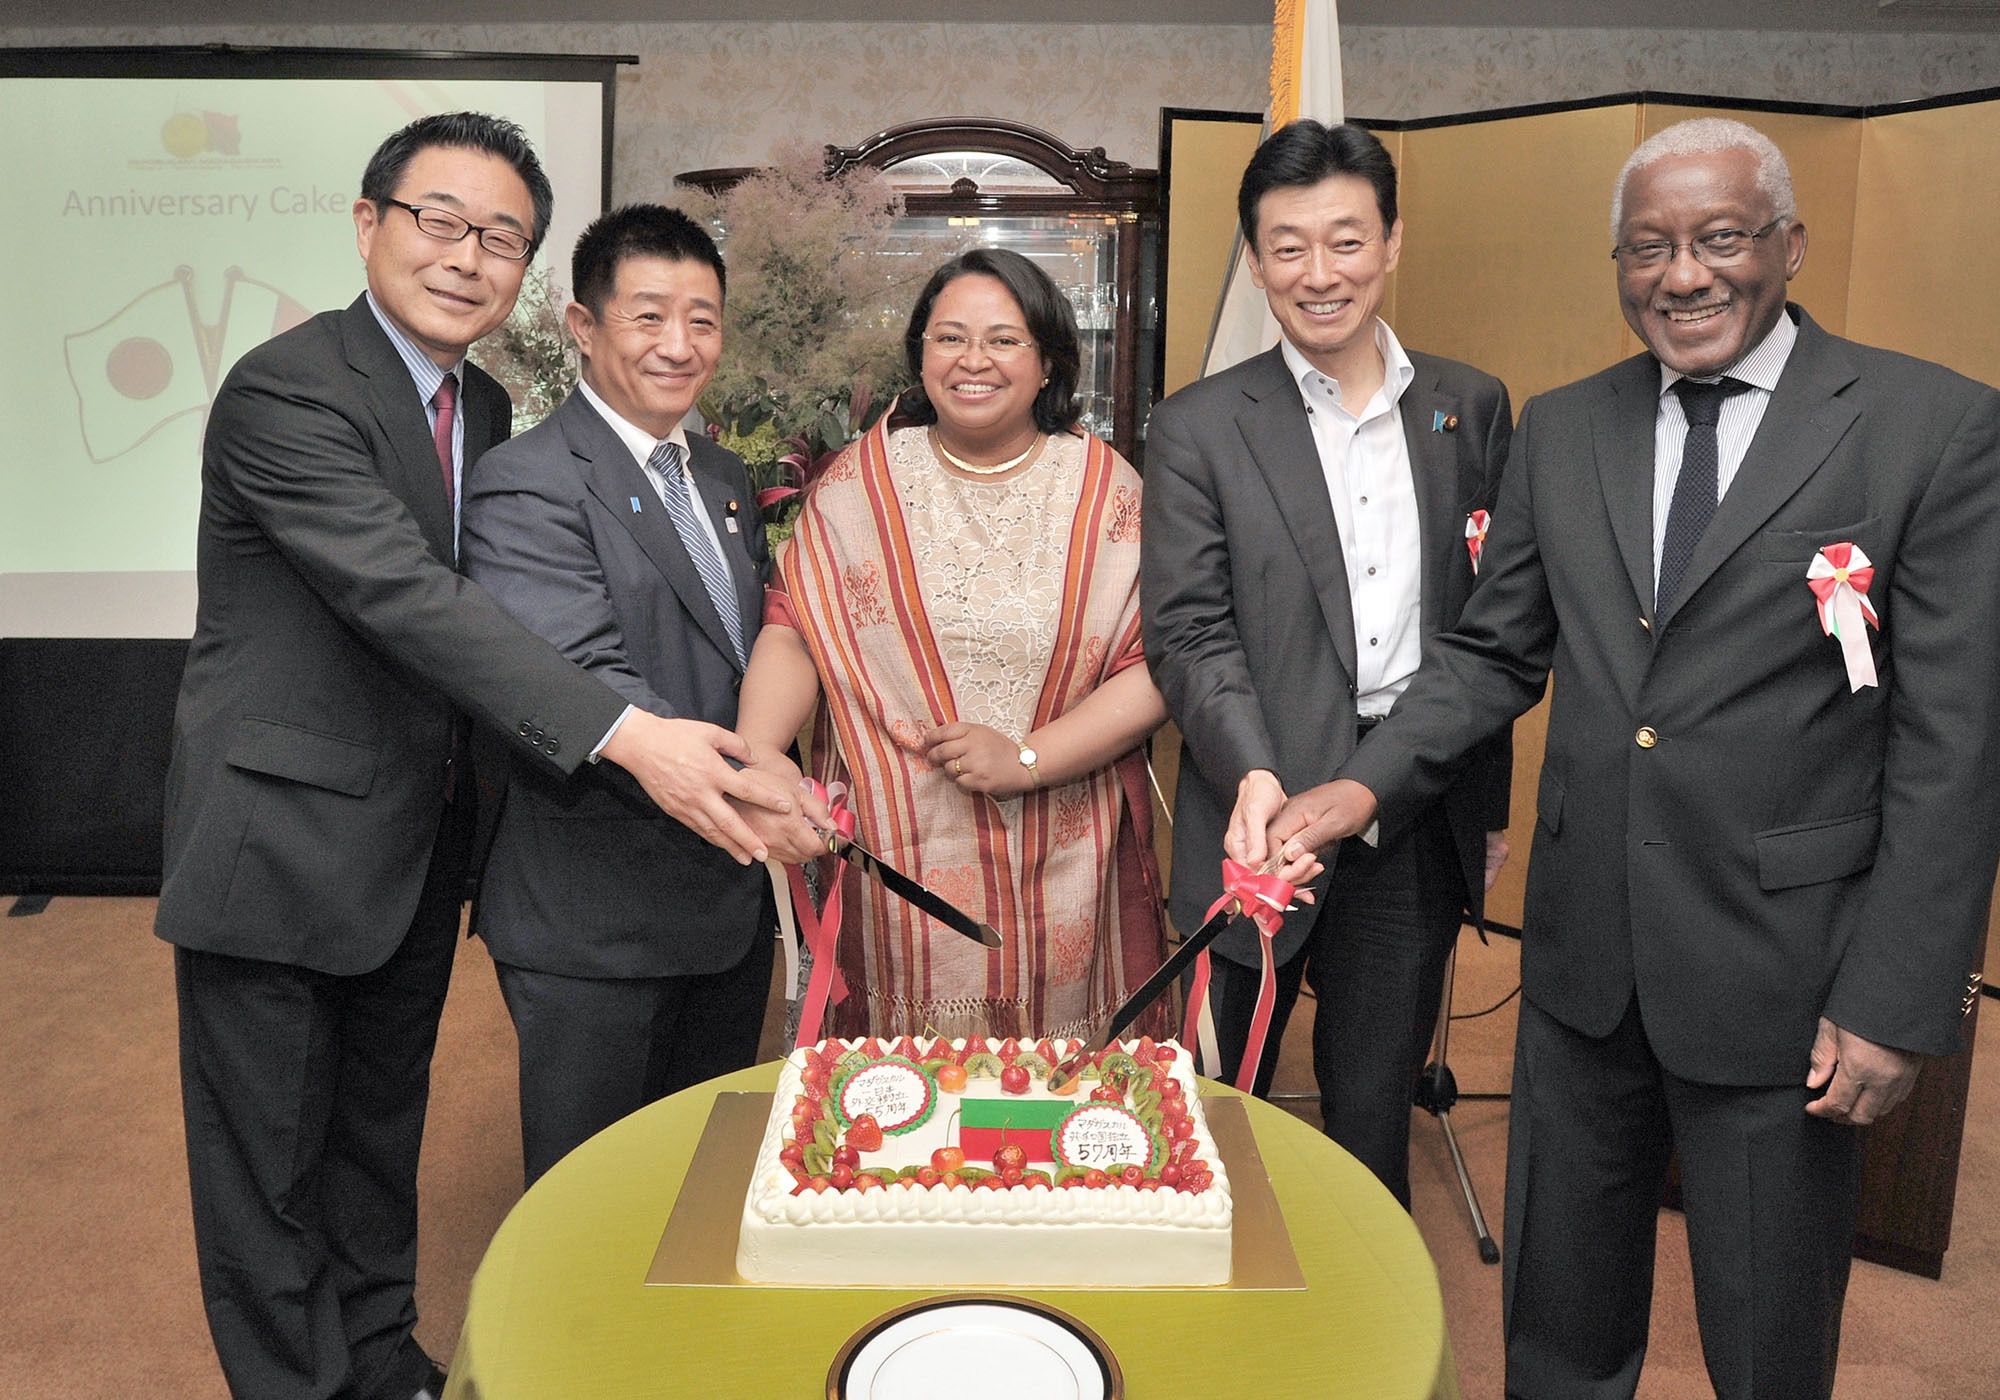 Madagascar Charge d'Affaires Rosette Rasoamanarivo (center) takes part in a cake-cutting ceremony with (from left) JICA Executive Vice President Kazuhiko Koshikawa; Takumi Ihara, parliamentary vice-minister of the economy, trade and industry; Lower House member Yasutoshi Nishimura; and Angola Ambassador Joao Miguel Vahekeni to celebrate the 57th anniversary of the independence of Madagascar and the 55th anniversary of diplomatic relations between Madagascar and Japan at the embassy in Tokyo on June 26. |  YOSHIAKI MIURA